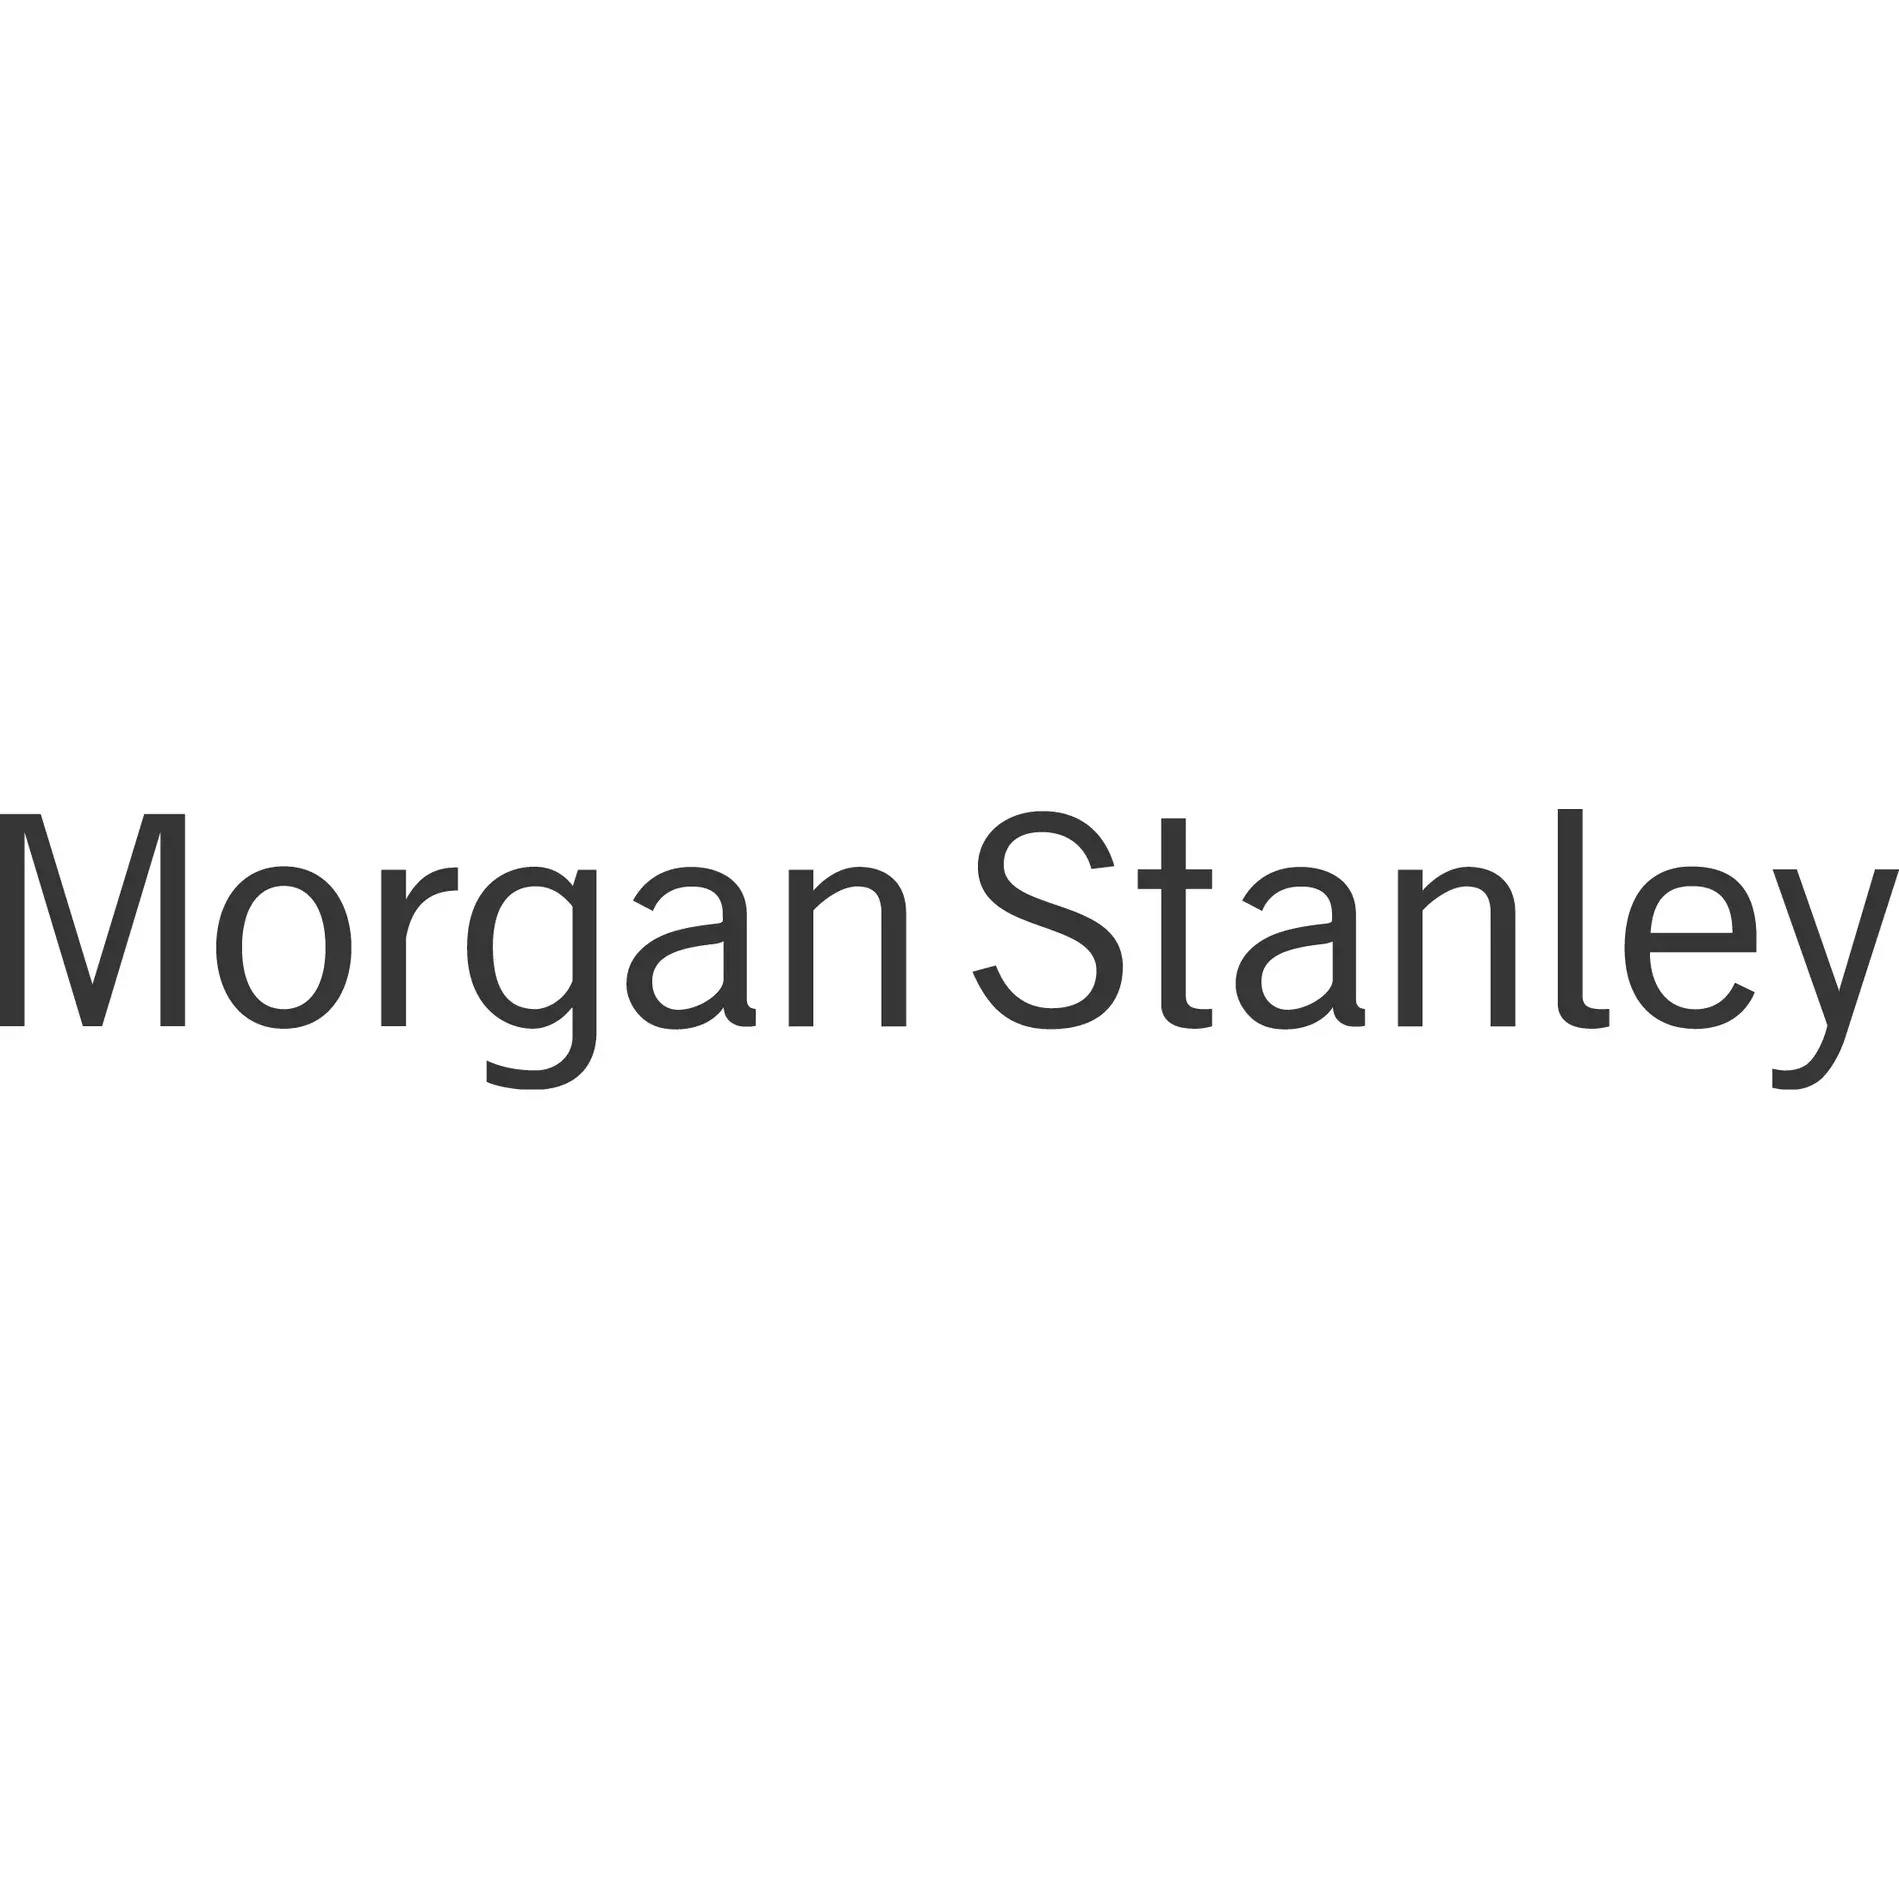 Stephen V Jackson - Morgan Stanley | Financial Advisor in Portland,Oregon